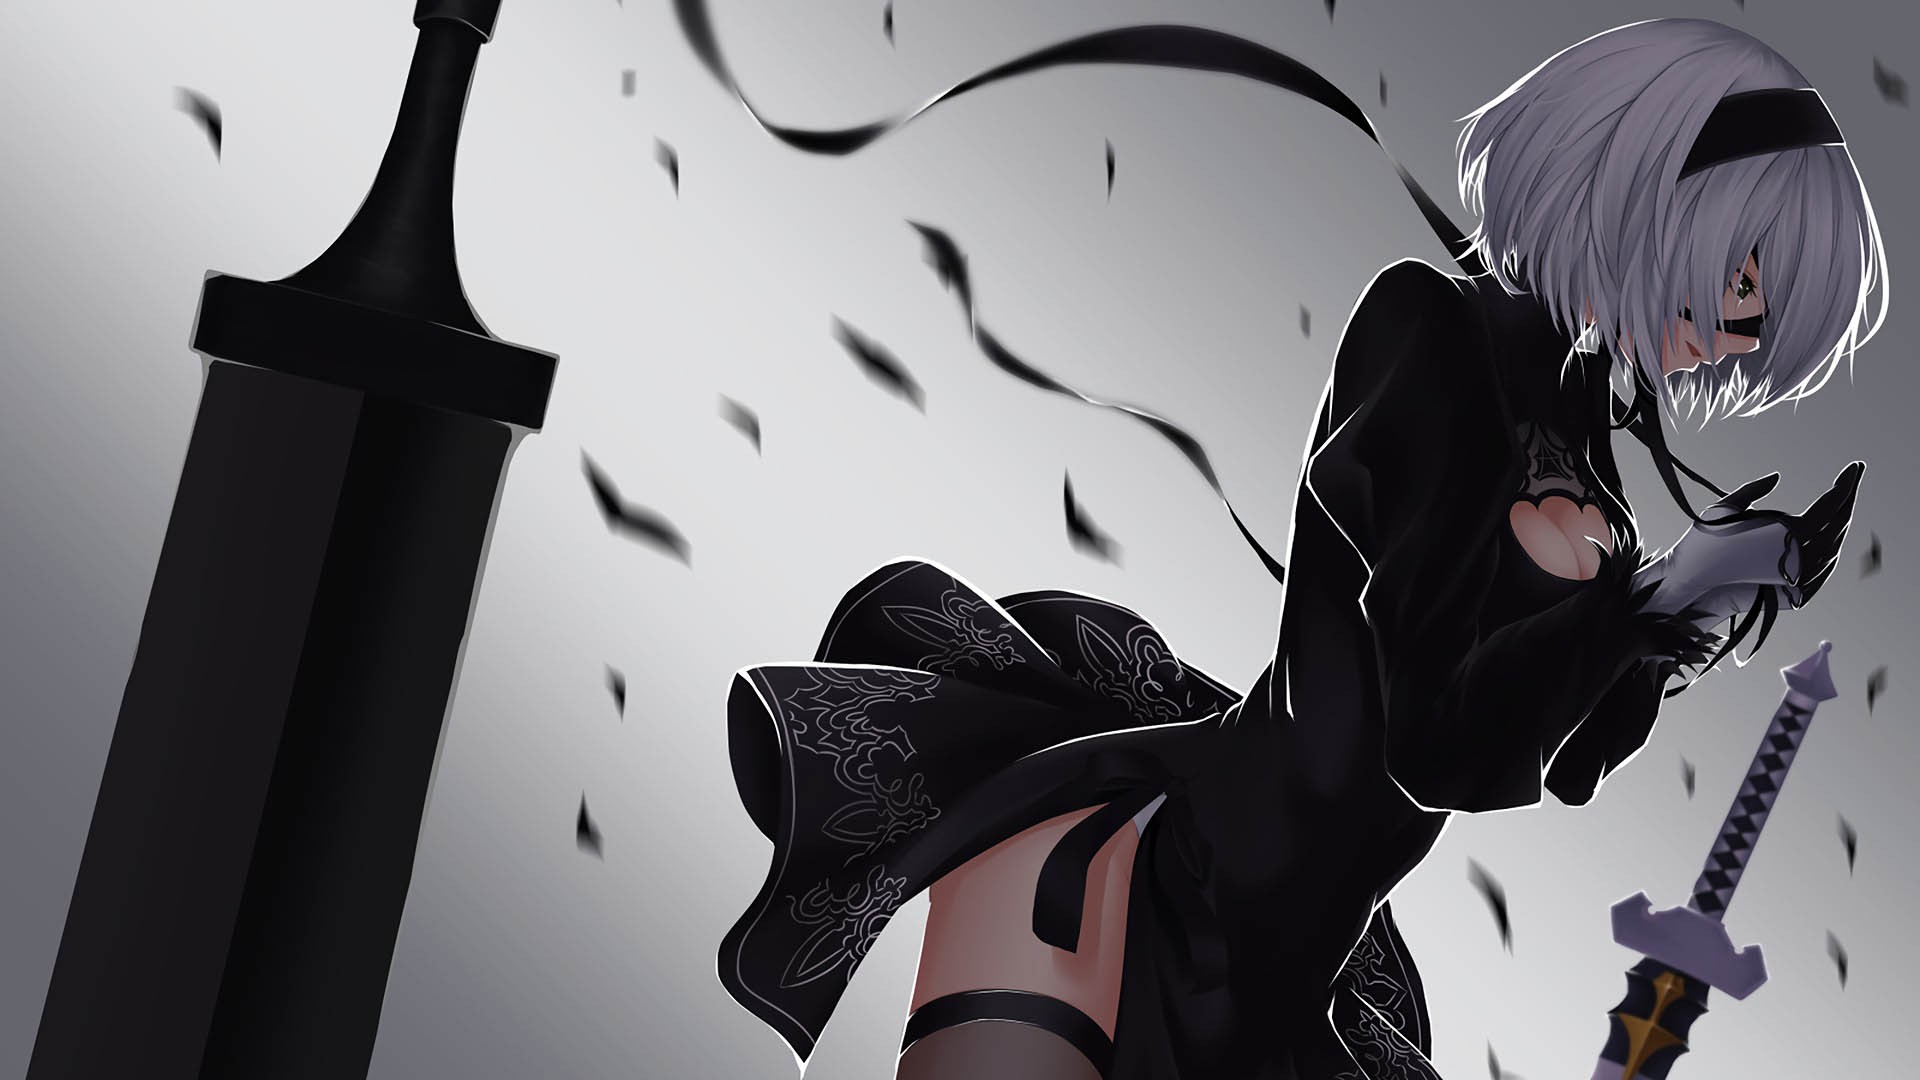 Nier Automata Wallpaper Download Free Cool High Resolution